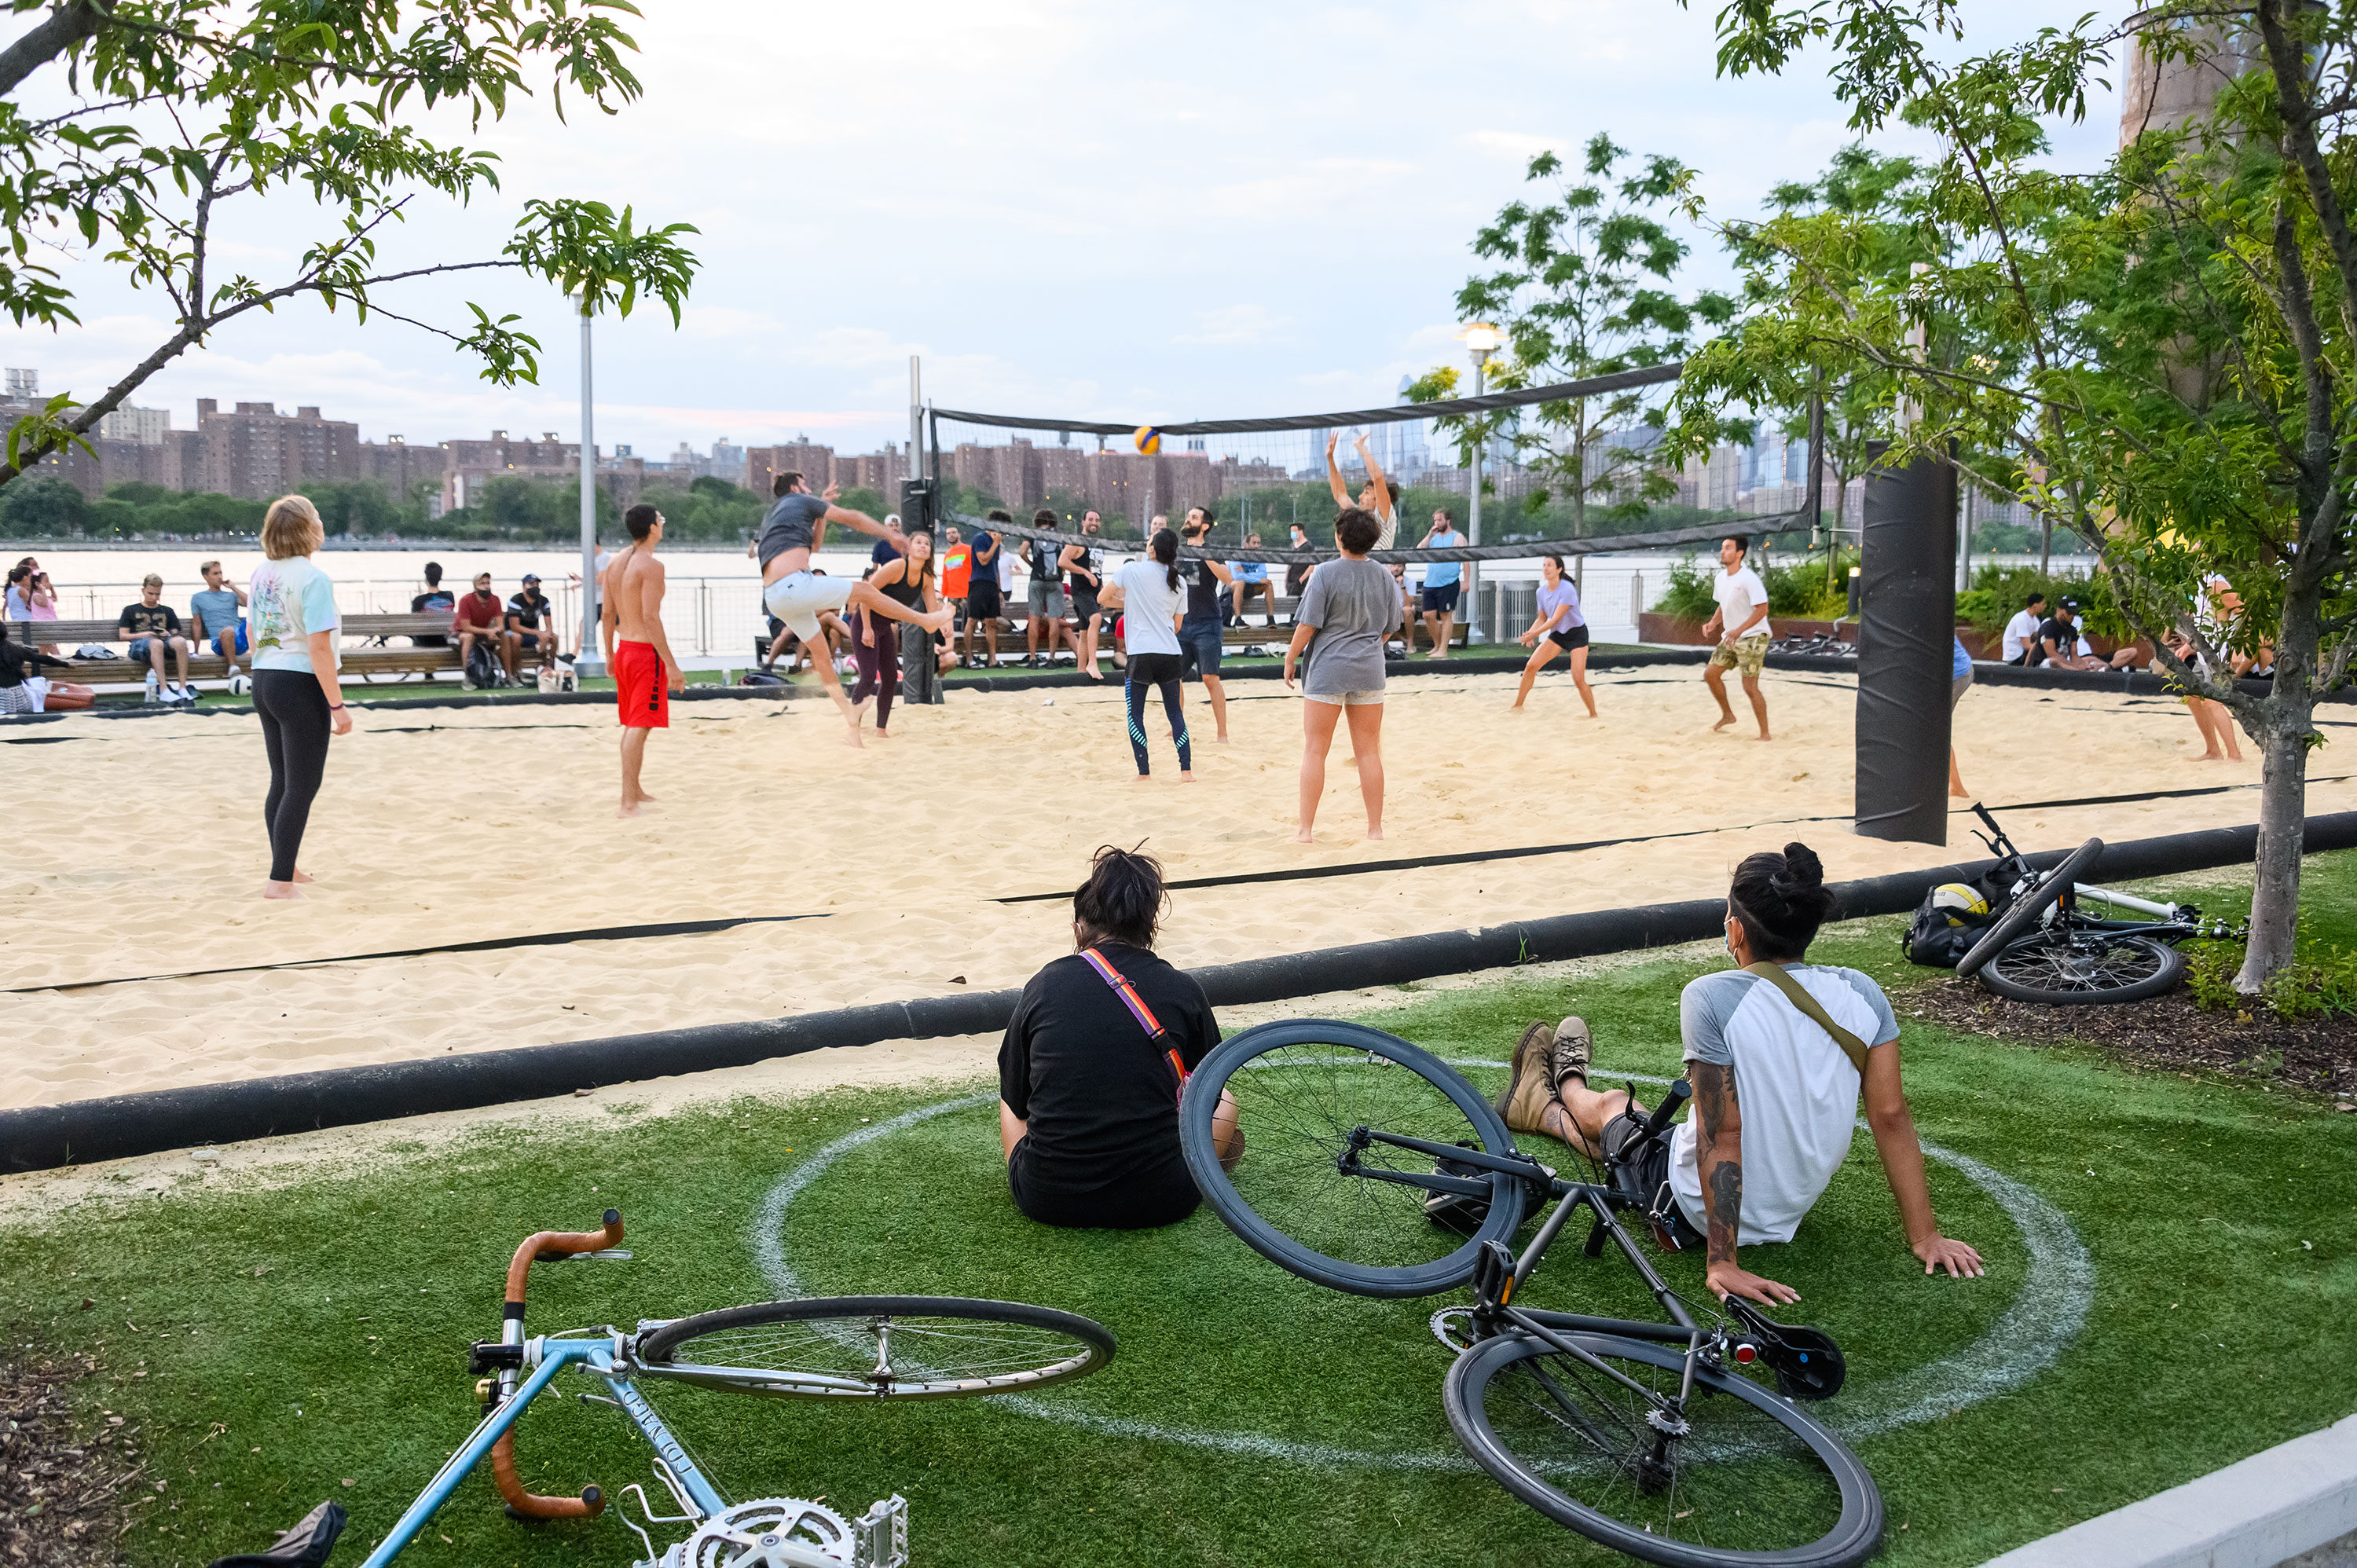 People sit in a white circle and watch others play volleyball in Domino Park in the Williamsburg neighborhood of Brooklyn on July 16.